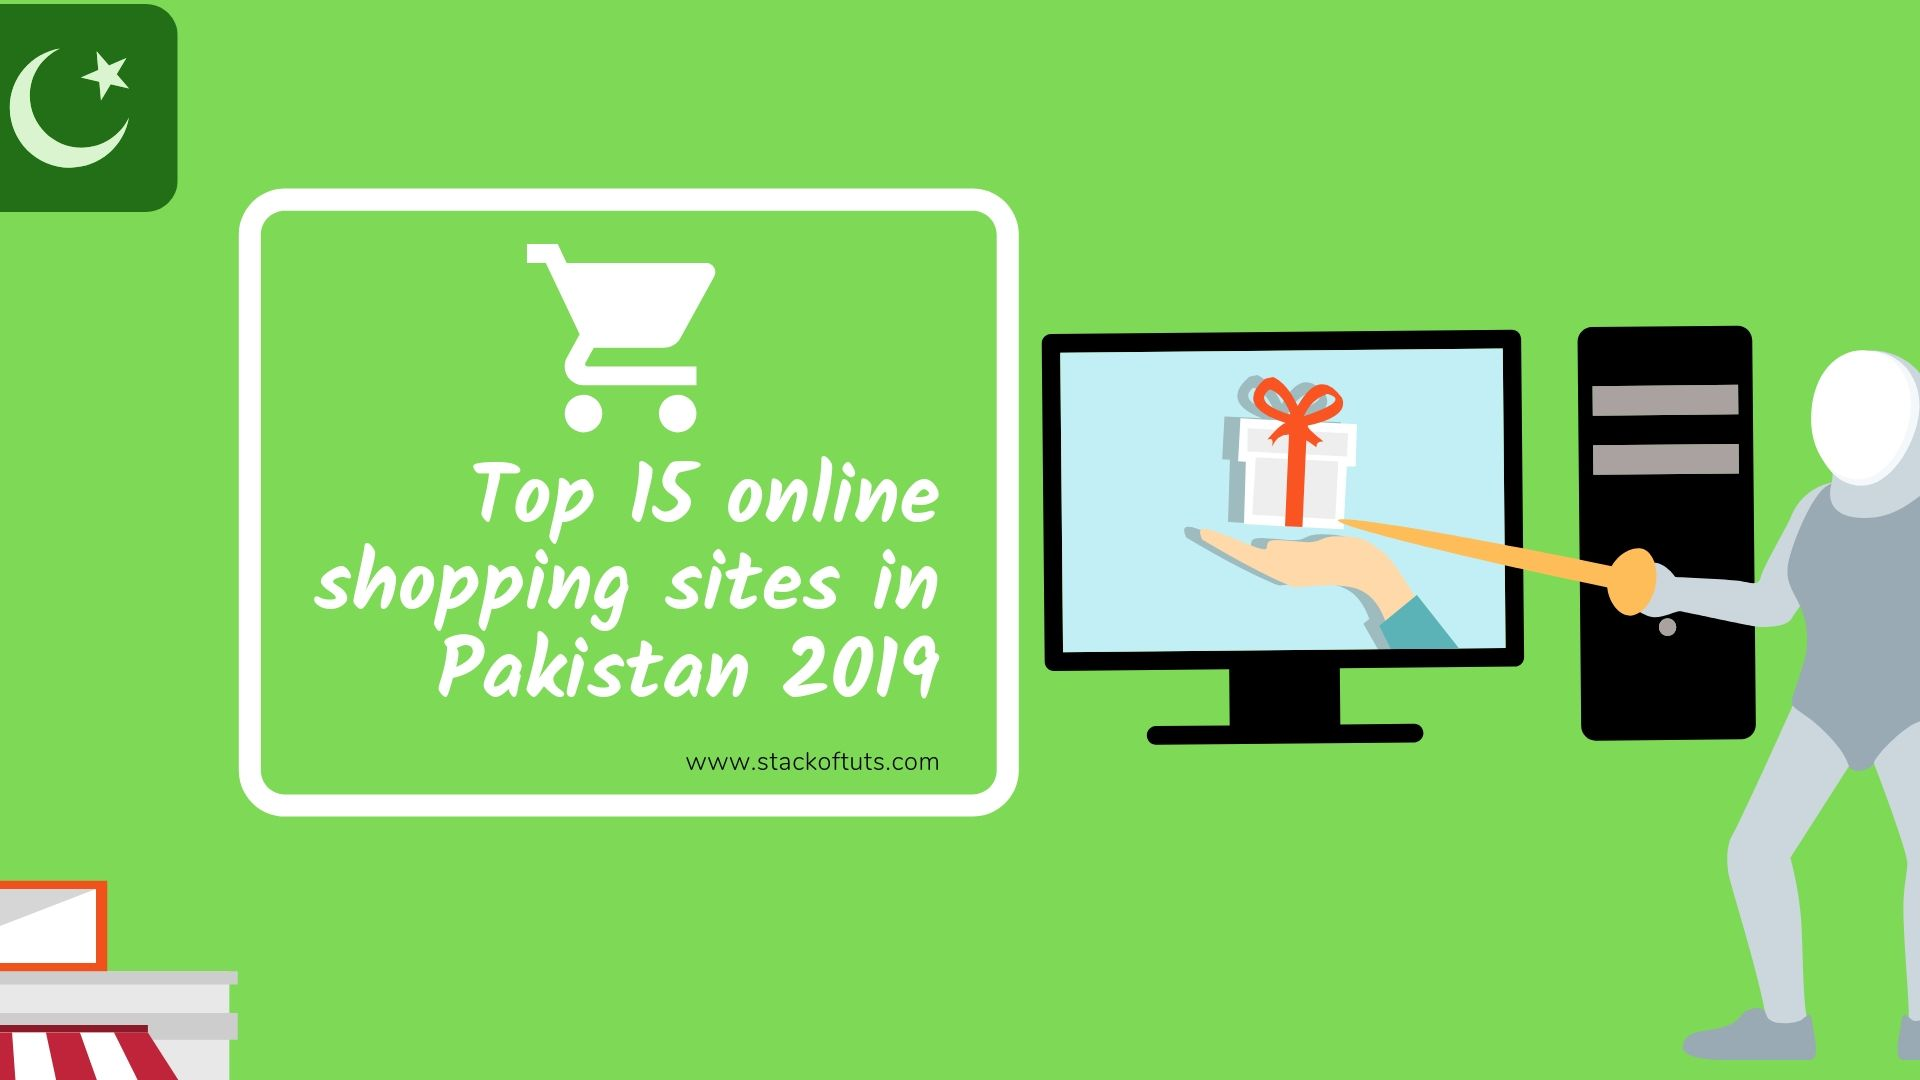 Top 15 online shopping sites in Pakistan 2019